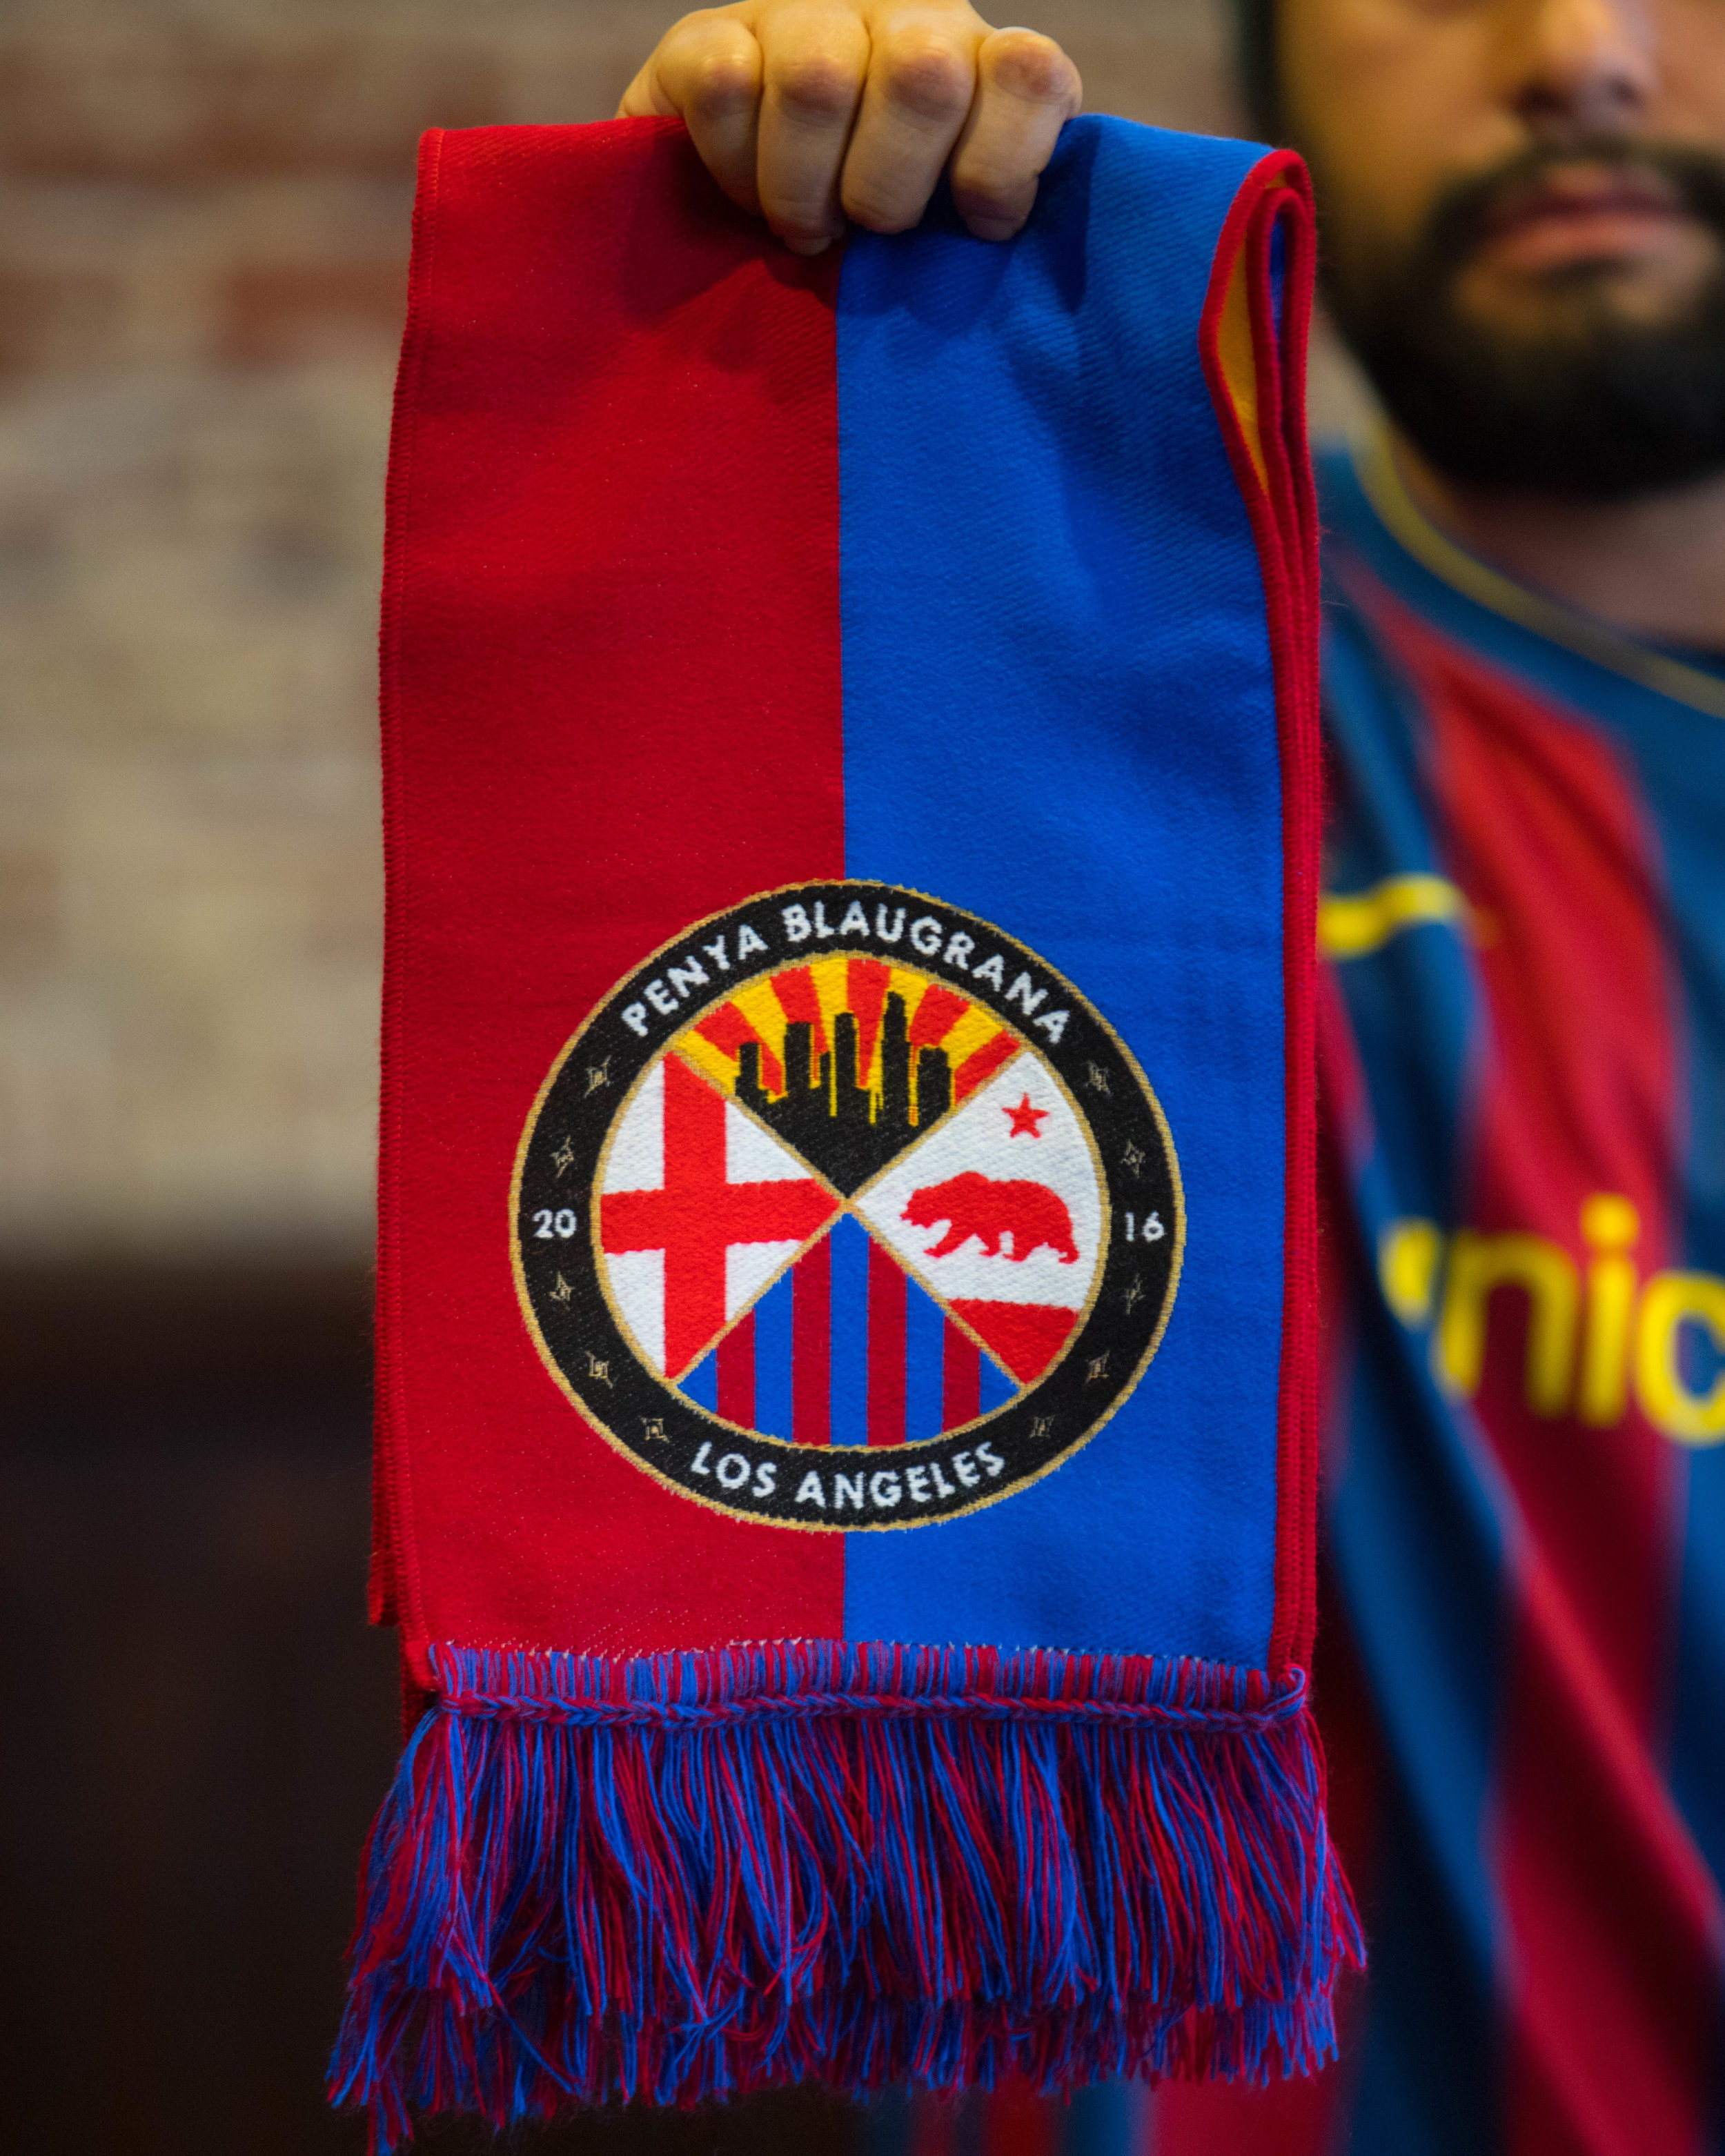 2018/19 Scarf - Our new scarf is here! Represent your Penya with pride!$35 Non-Members$25 MembersLimited Quantities Available until next order.